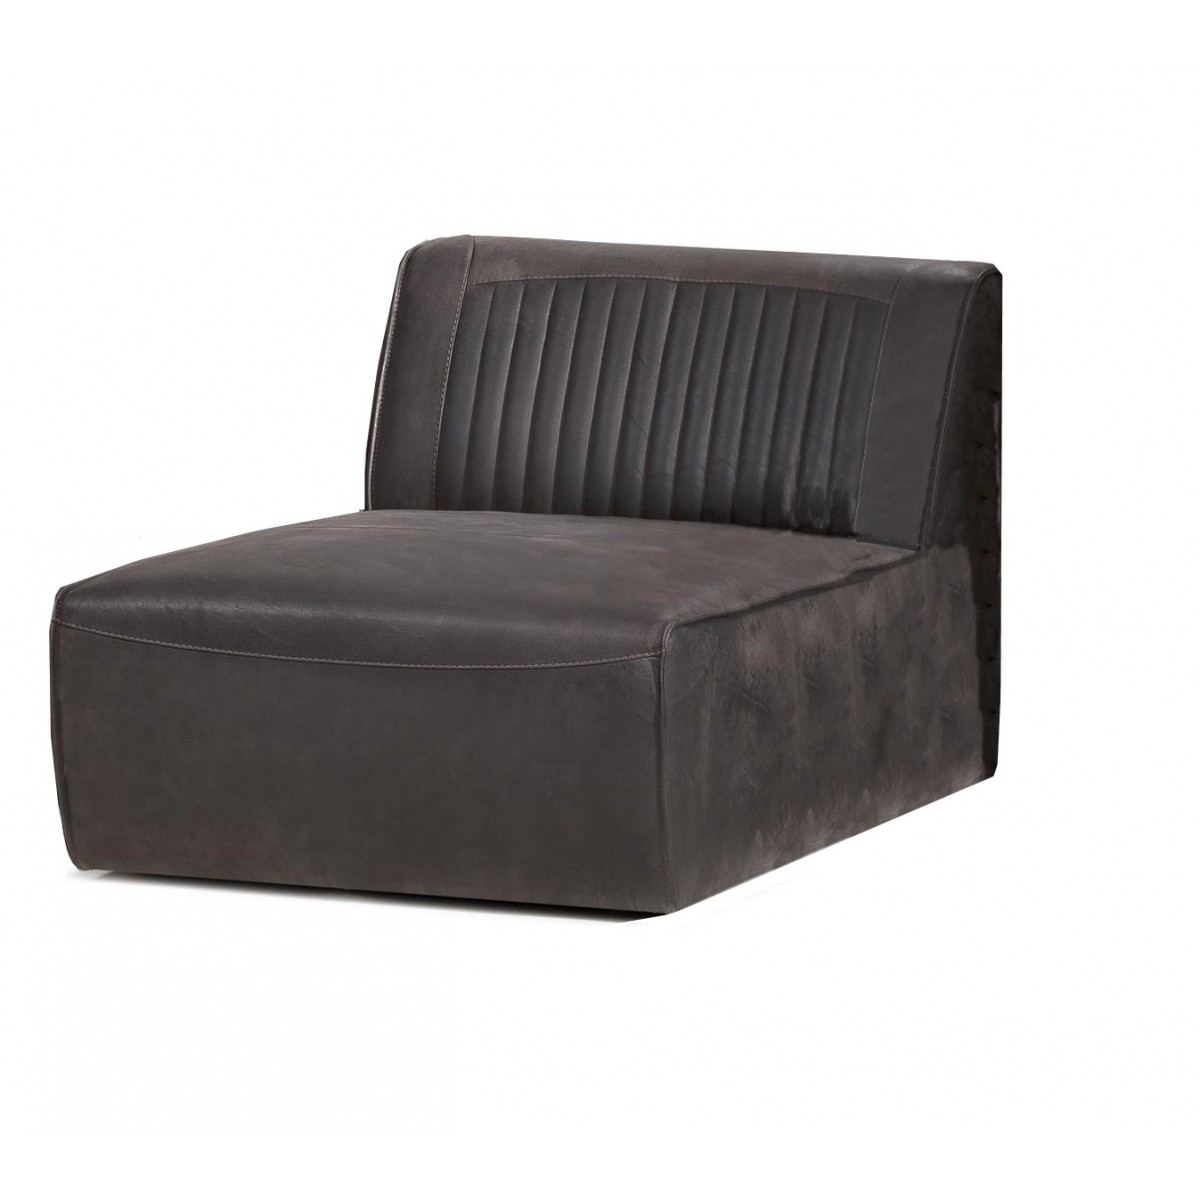 Vision chaise longue | I Live Design on chaise furniture, chaise recliner chair, chaise sofa sleeper,